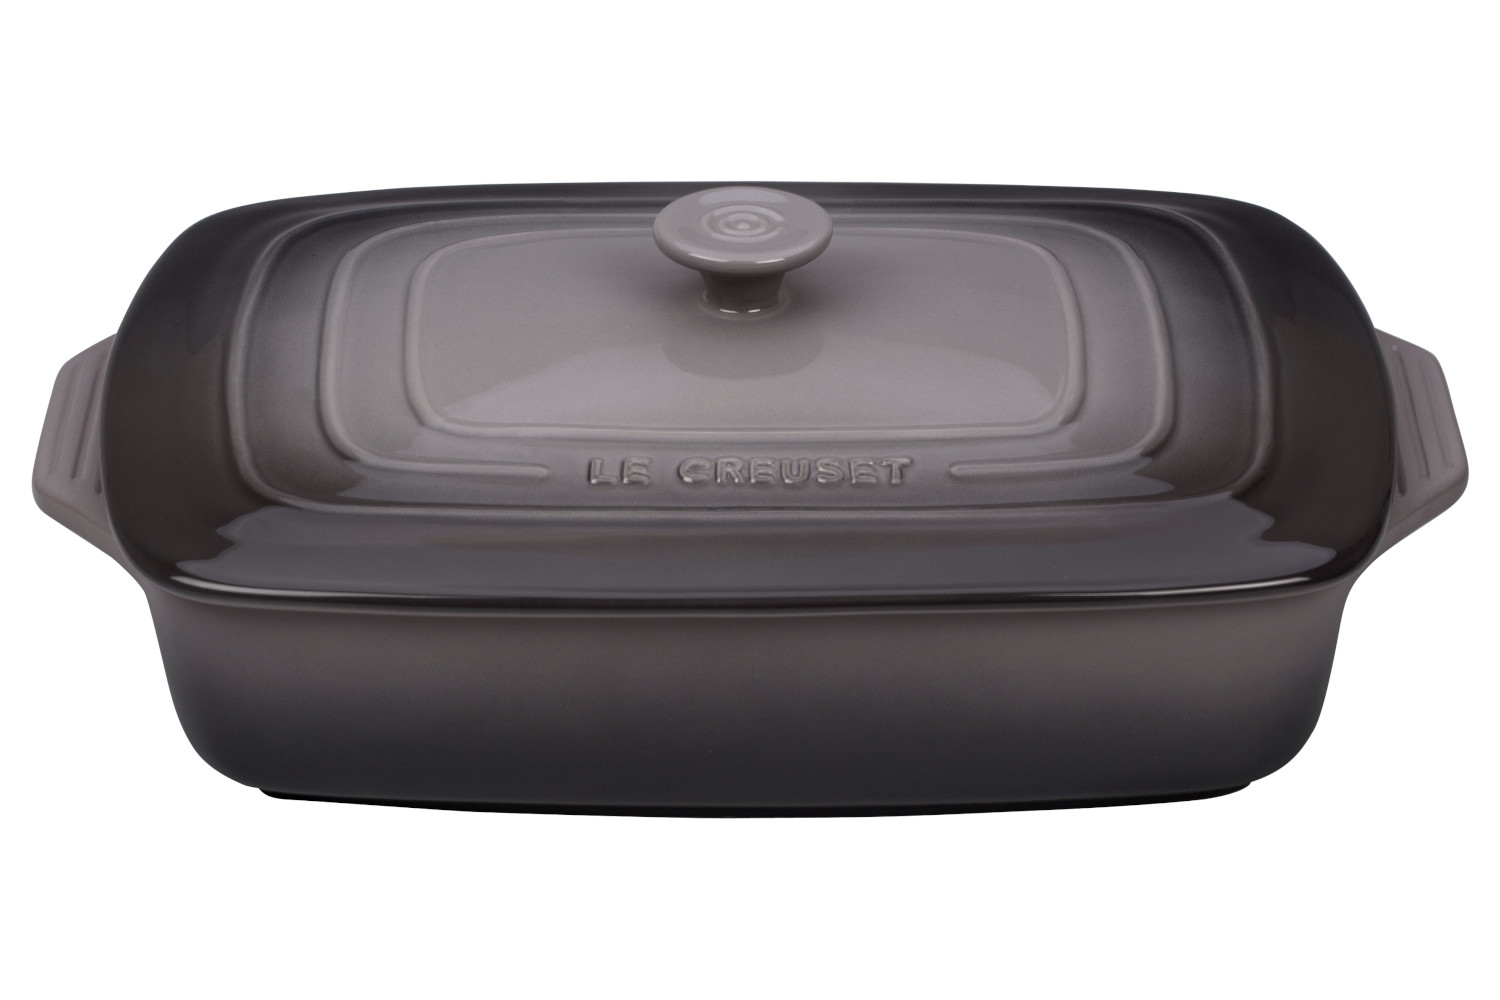 Le Creuset Stoneware 3 1/2 qt. Covered Rectangular Casserole - Oyster